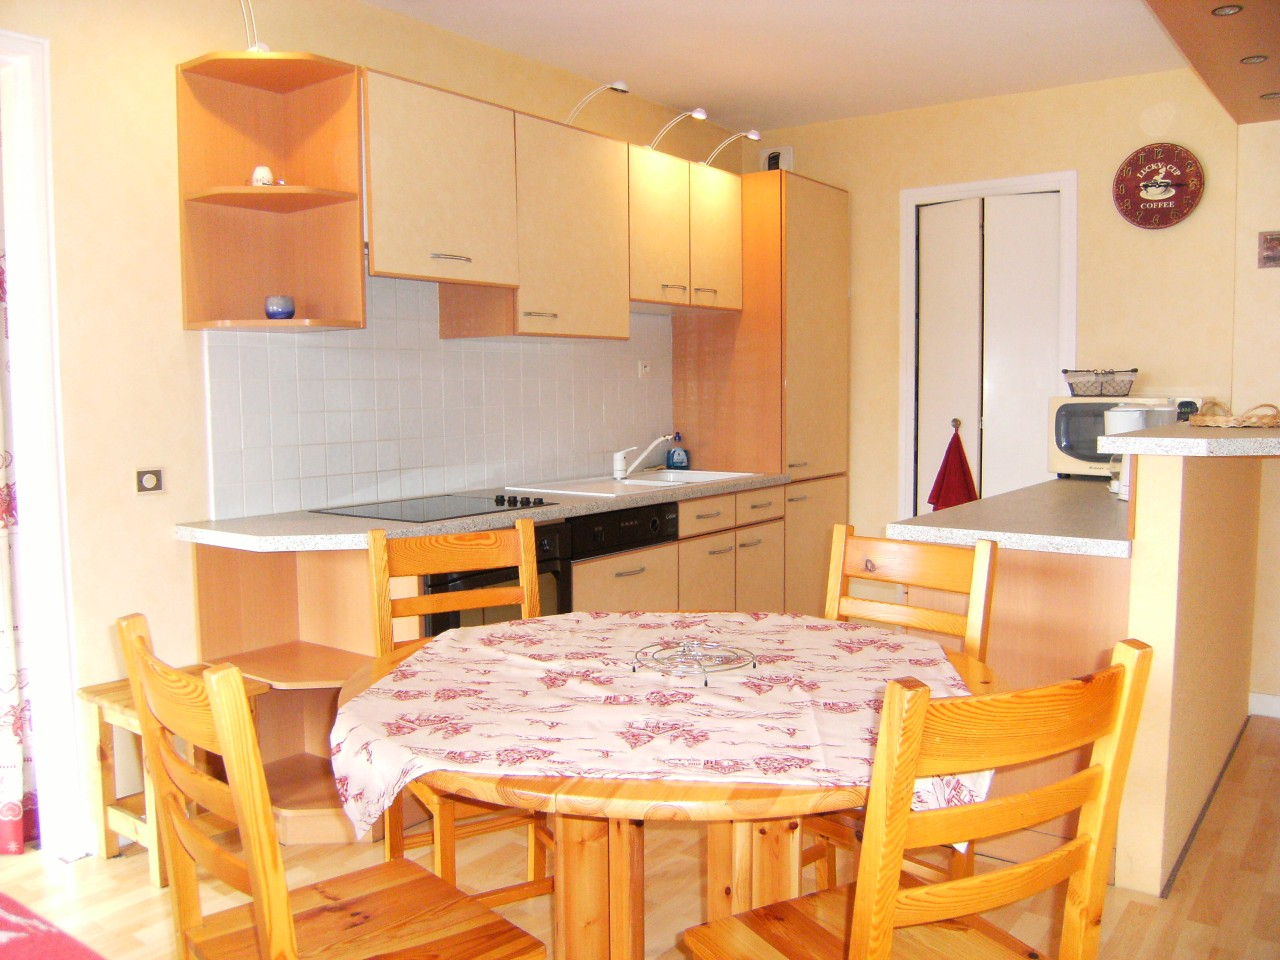 Agence immobili re g rardmer annonce appartements n 2096 for Agence immobiliere gerardmer